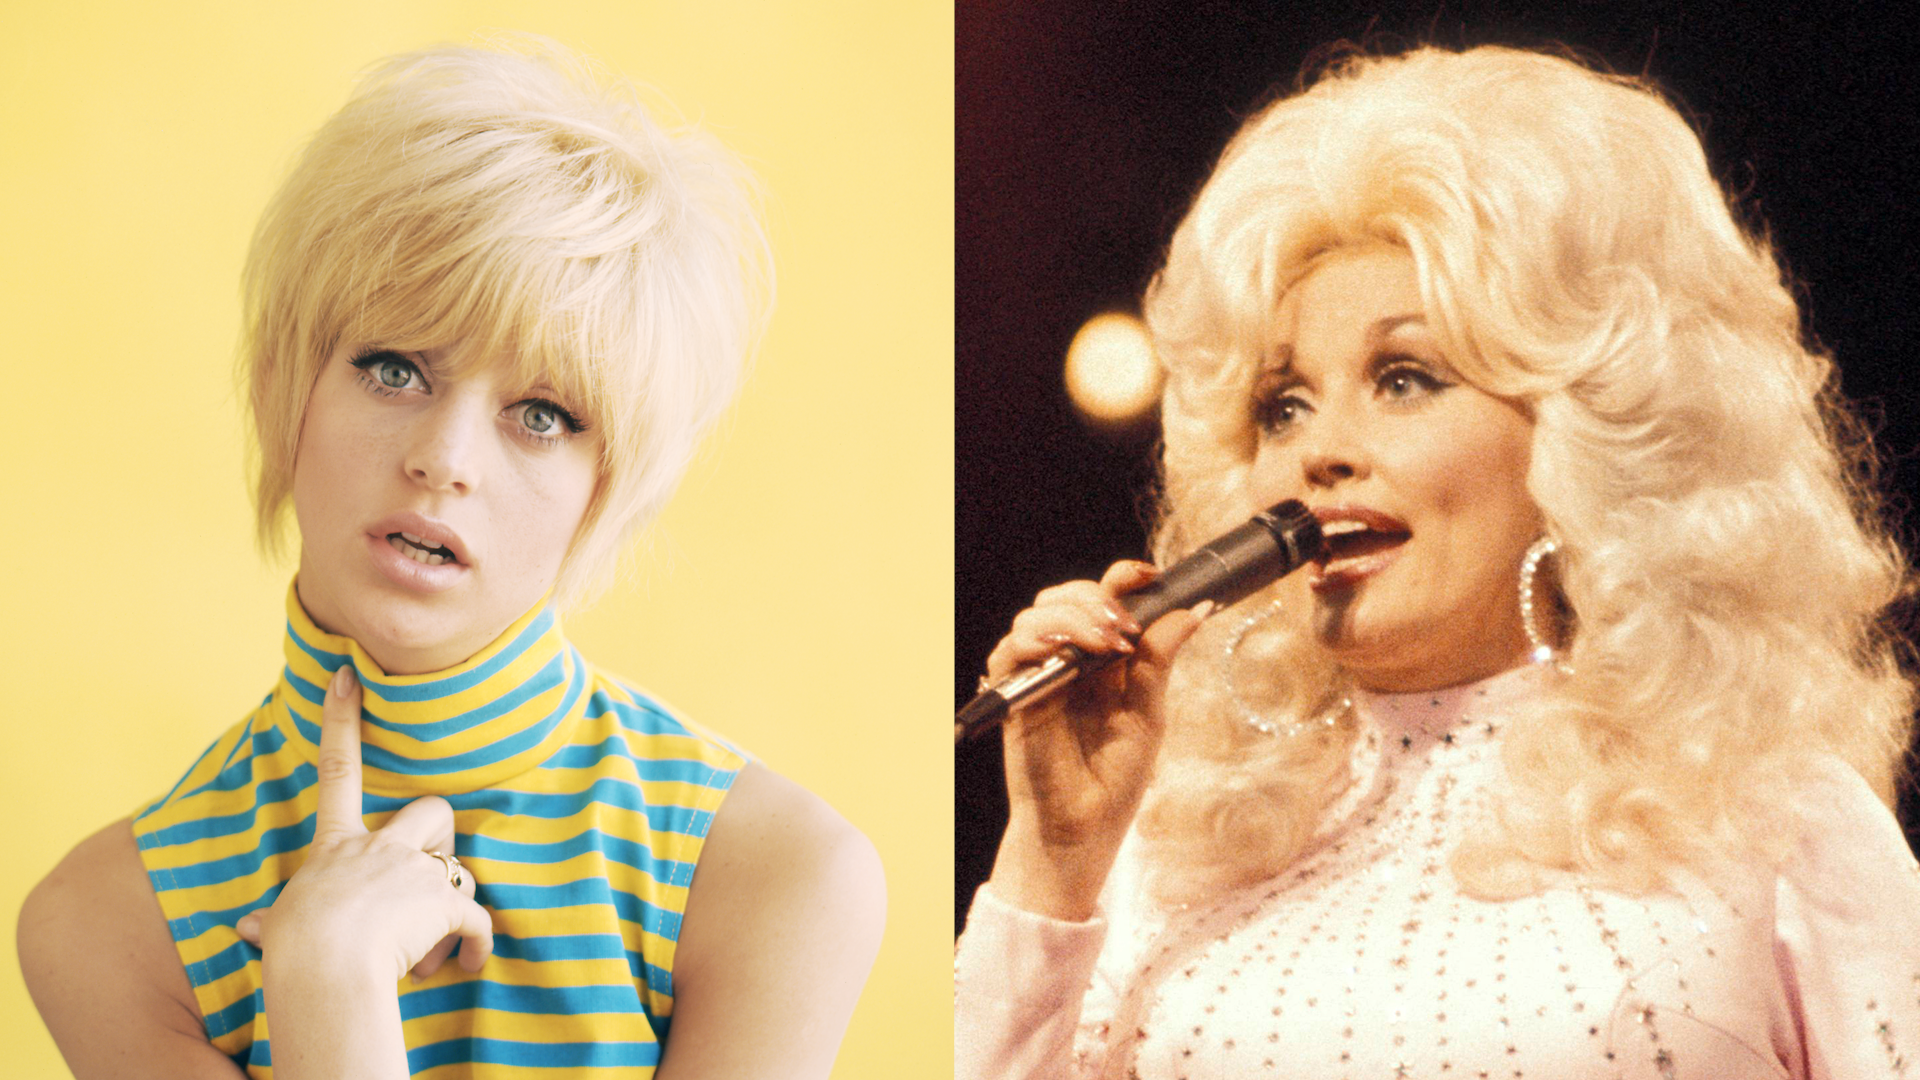 Goldie Hawn still confused over compliments from Elvis and Dolly Parton: 'I wonder if I look weird?' - Yahoo Entertainment